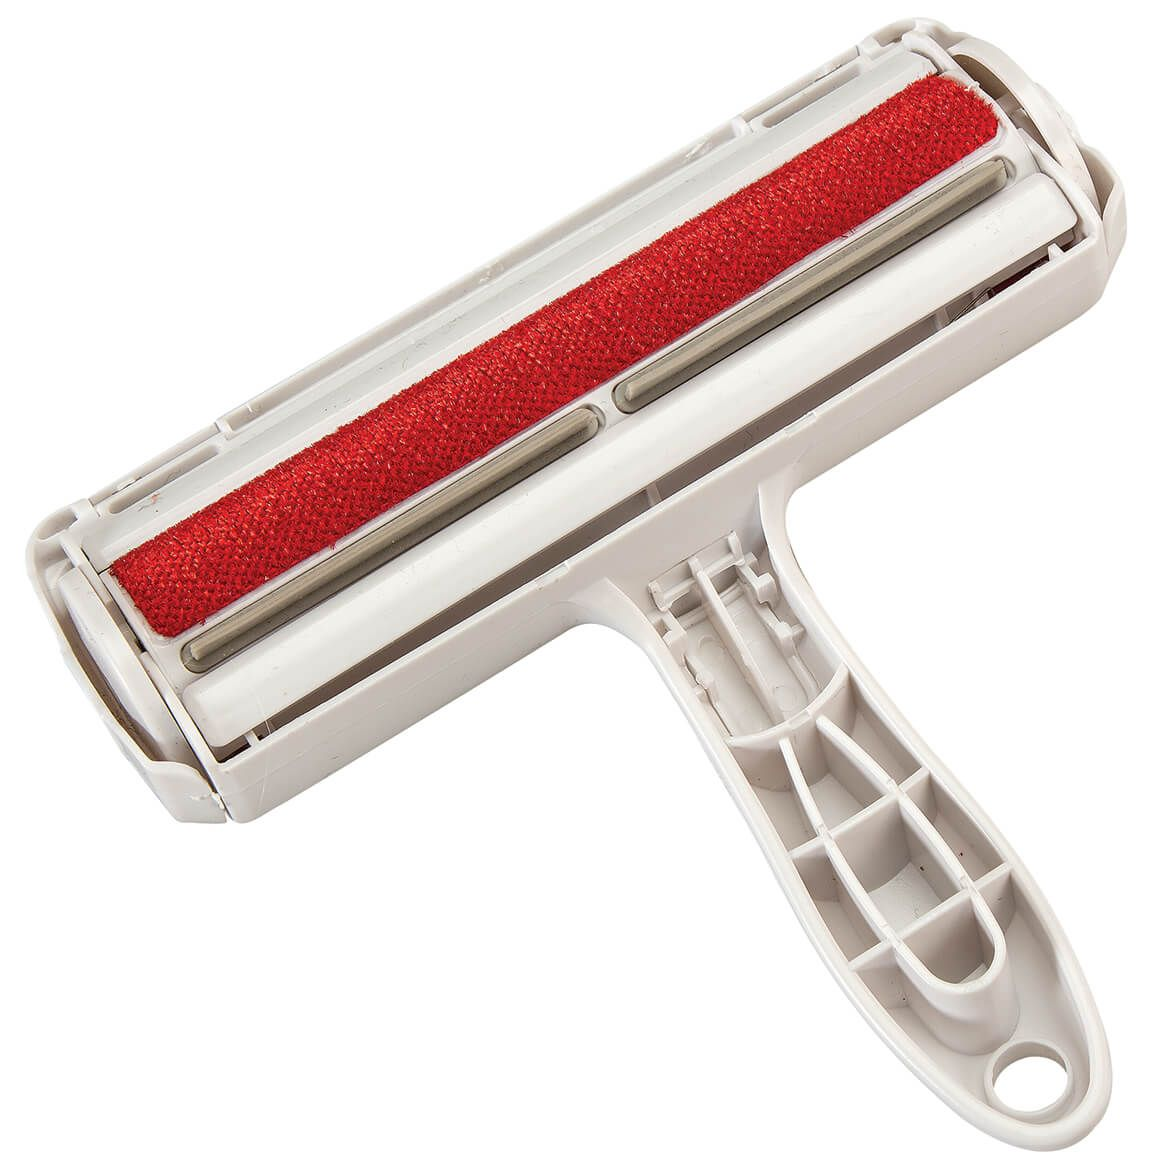 Roller Pet Hair Remover-372084